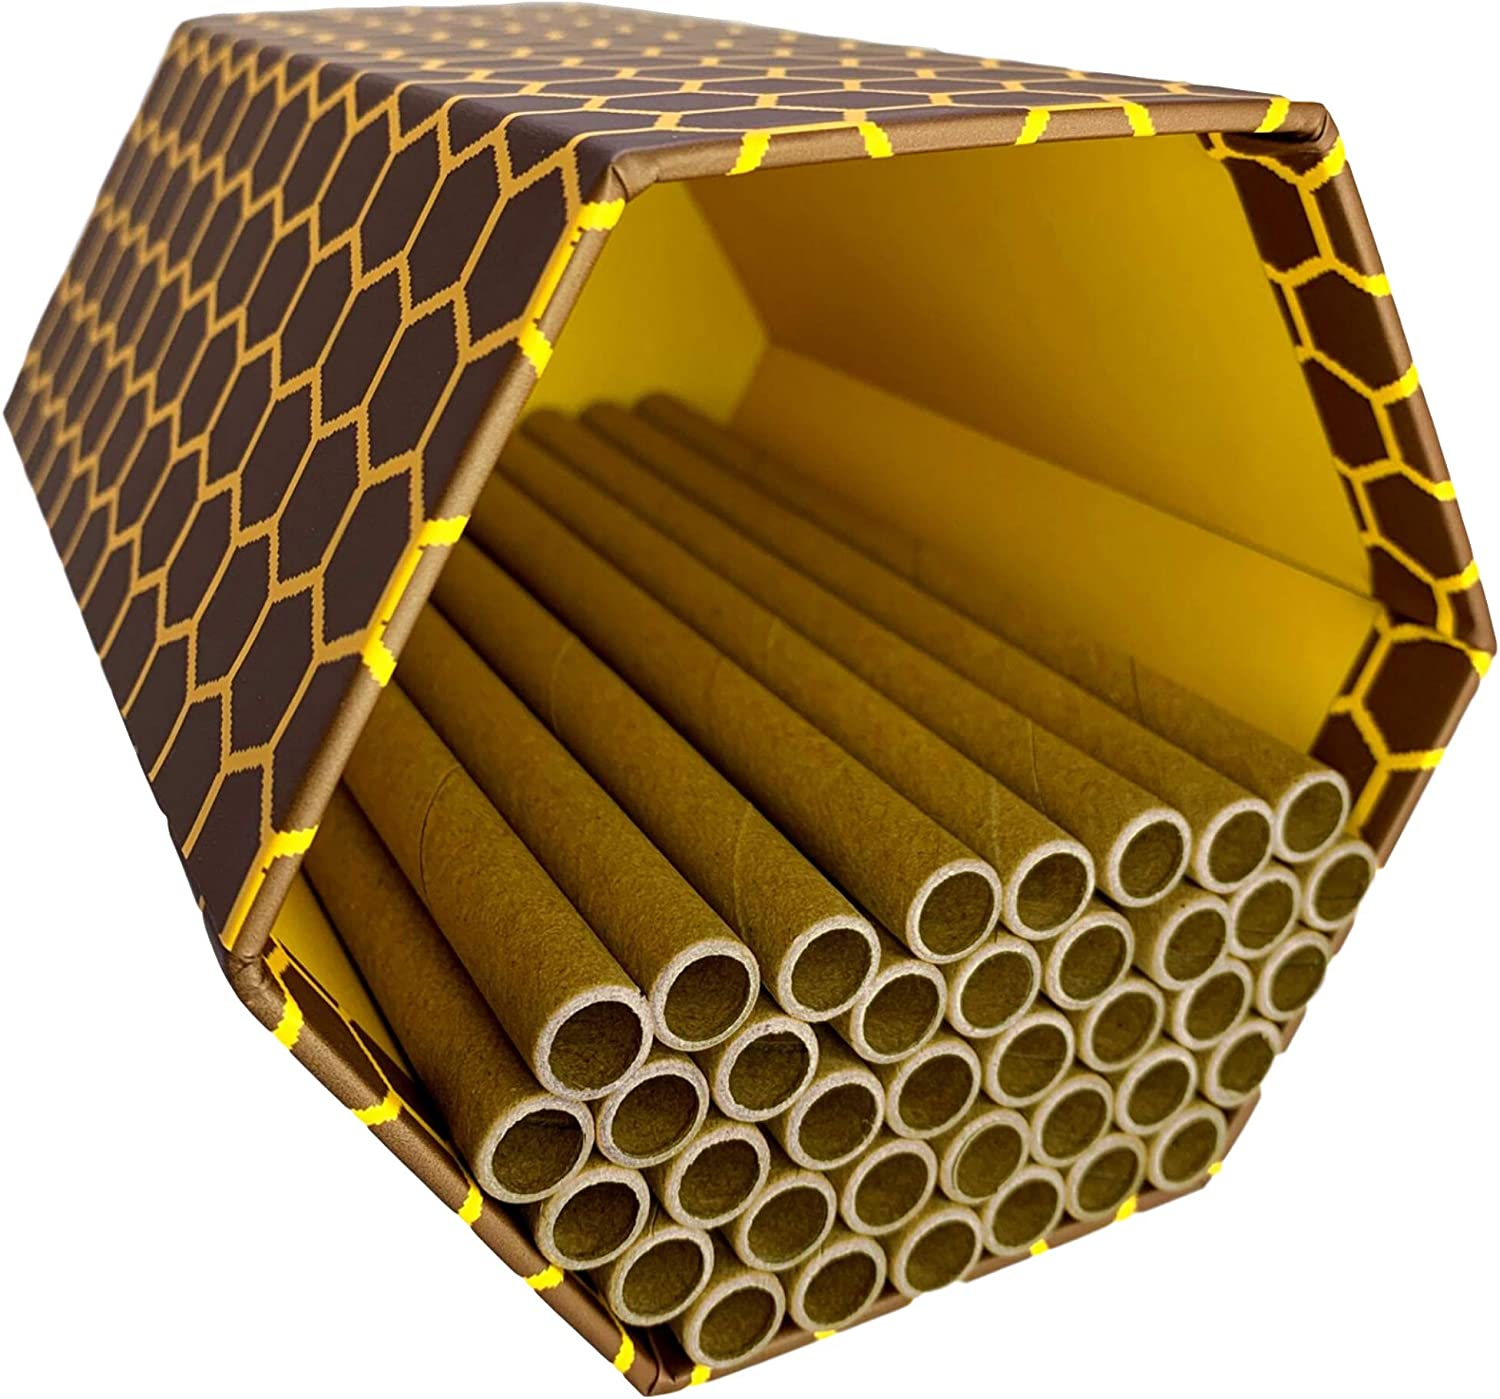 Mason Bee House | Solitary Bees Home for Your Garden | Perfect Starter Kit Combined with Our Tubes to Create a Bee Hive, Nest, Hotel, or Box | for Mason Bees & Leafcutter Bees | Not for Honey Bees